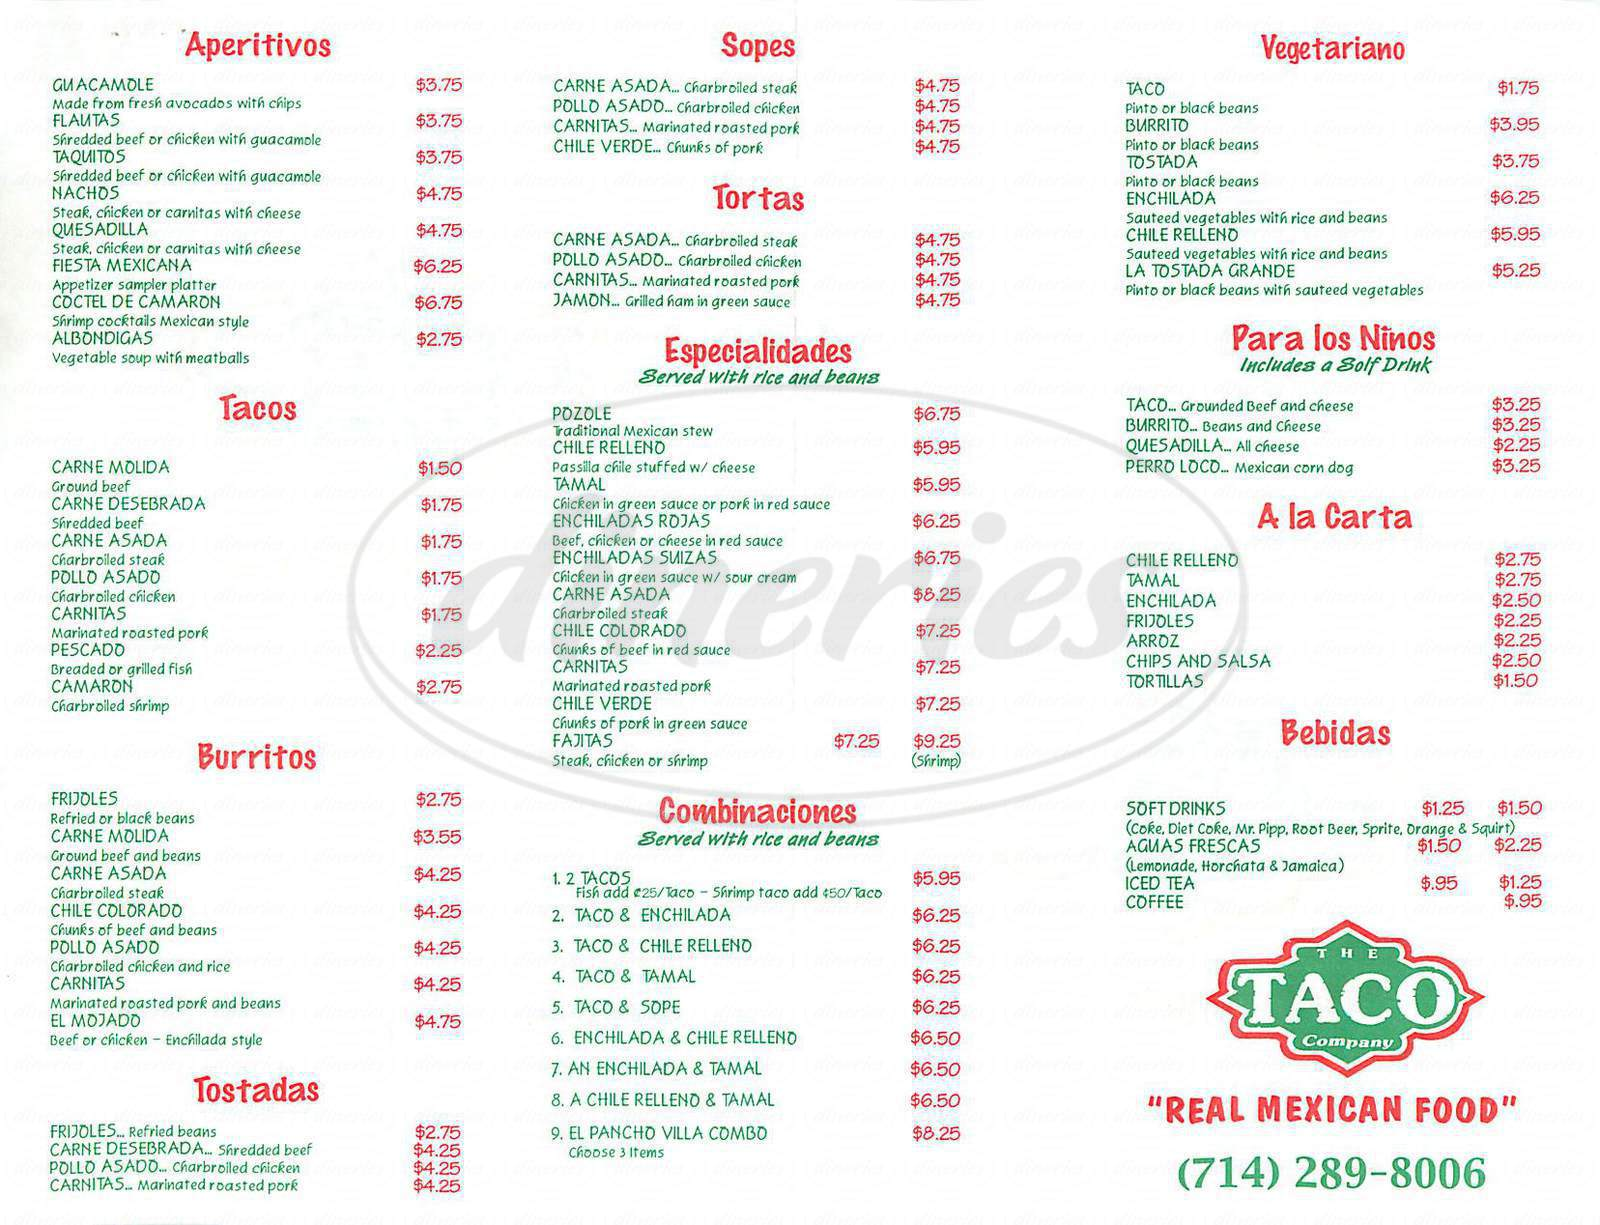 menu for The Taco Company